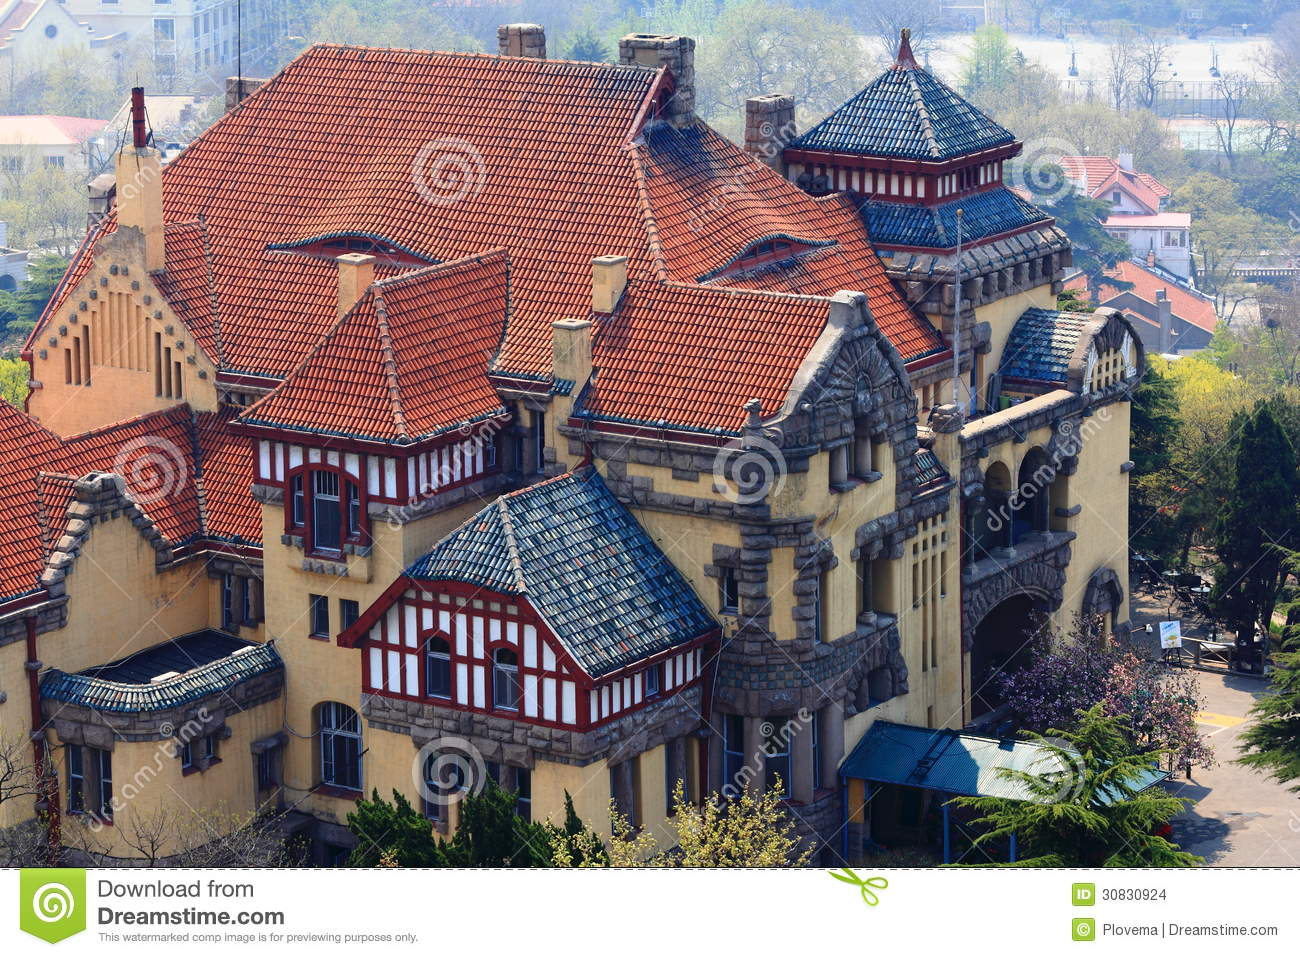 old german style architecture stock images - image: 30830924